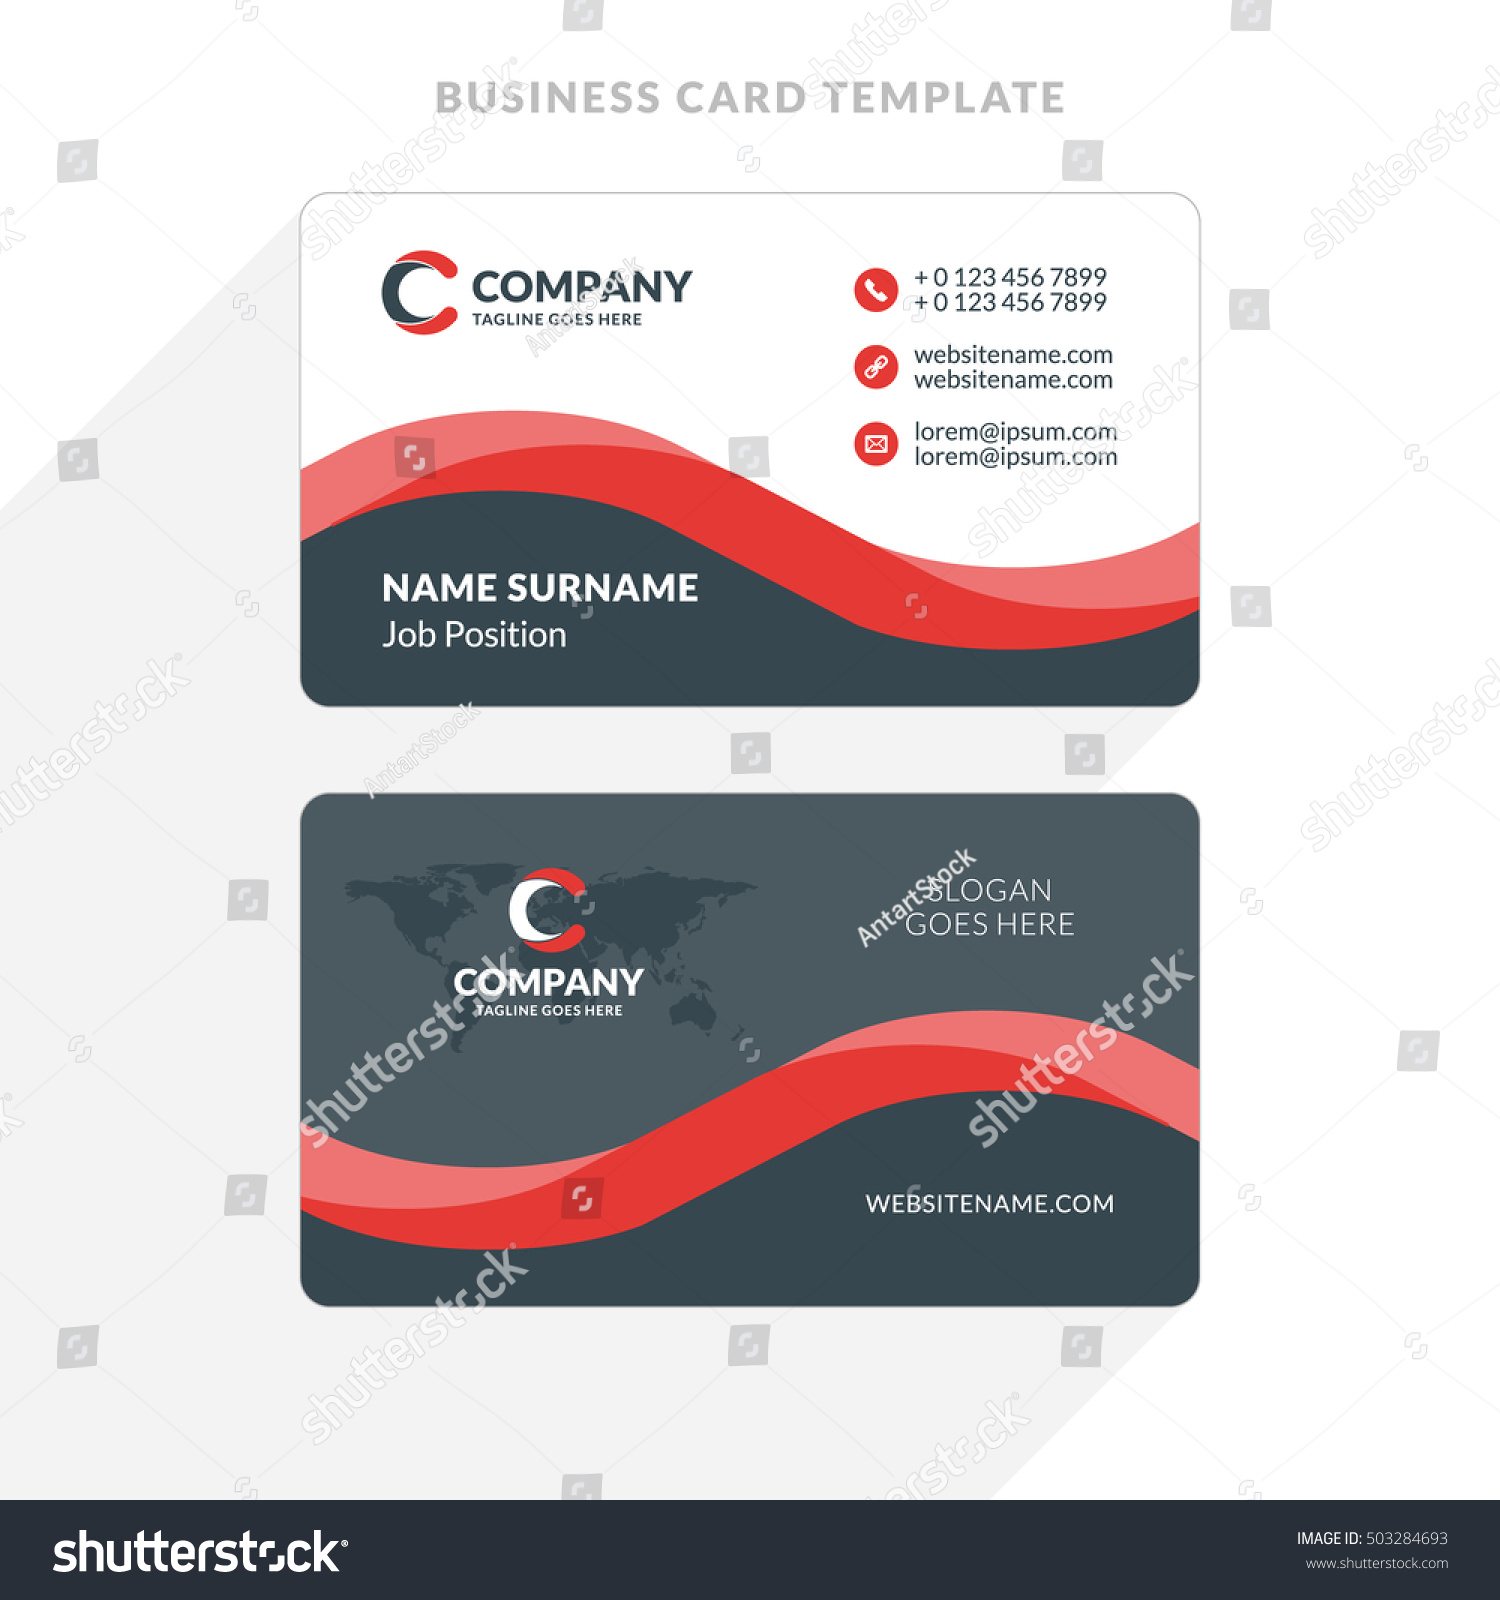 creative clean doublesided business card template stock vector 503284693 shutterstock. Black Bedroom Furniture Sets. Home Design Ideas